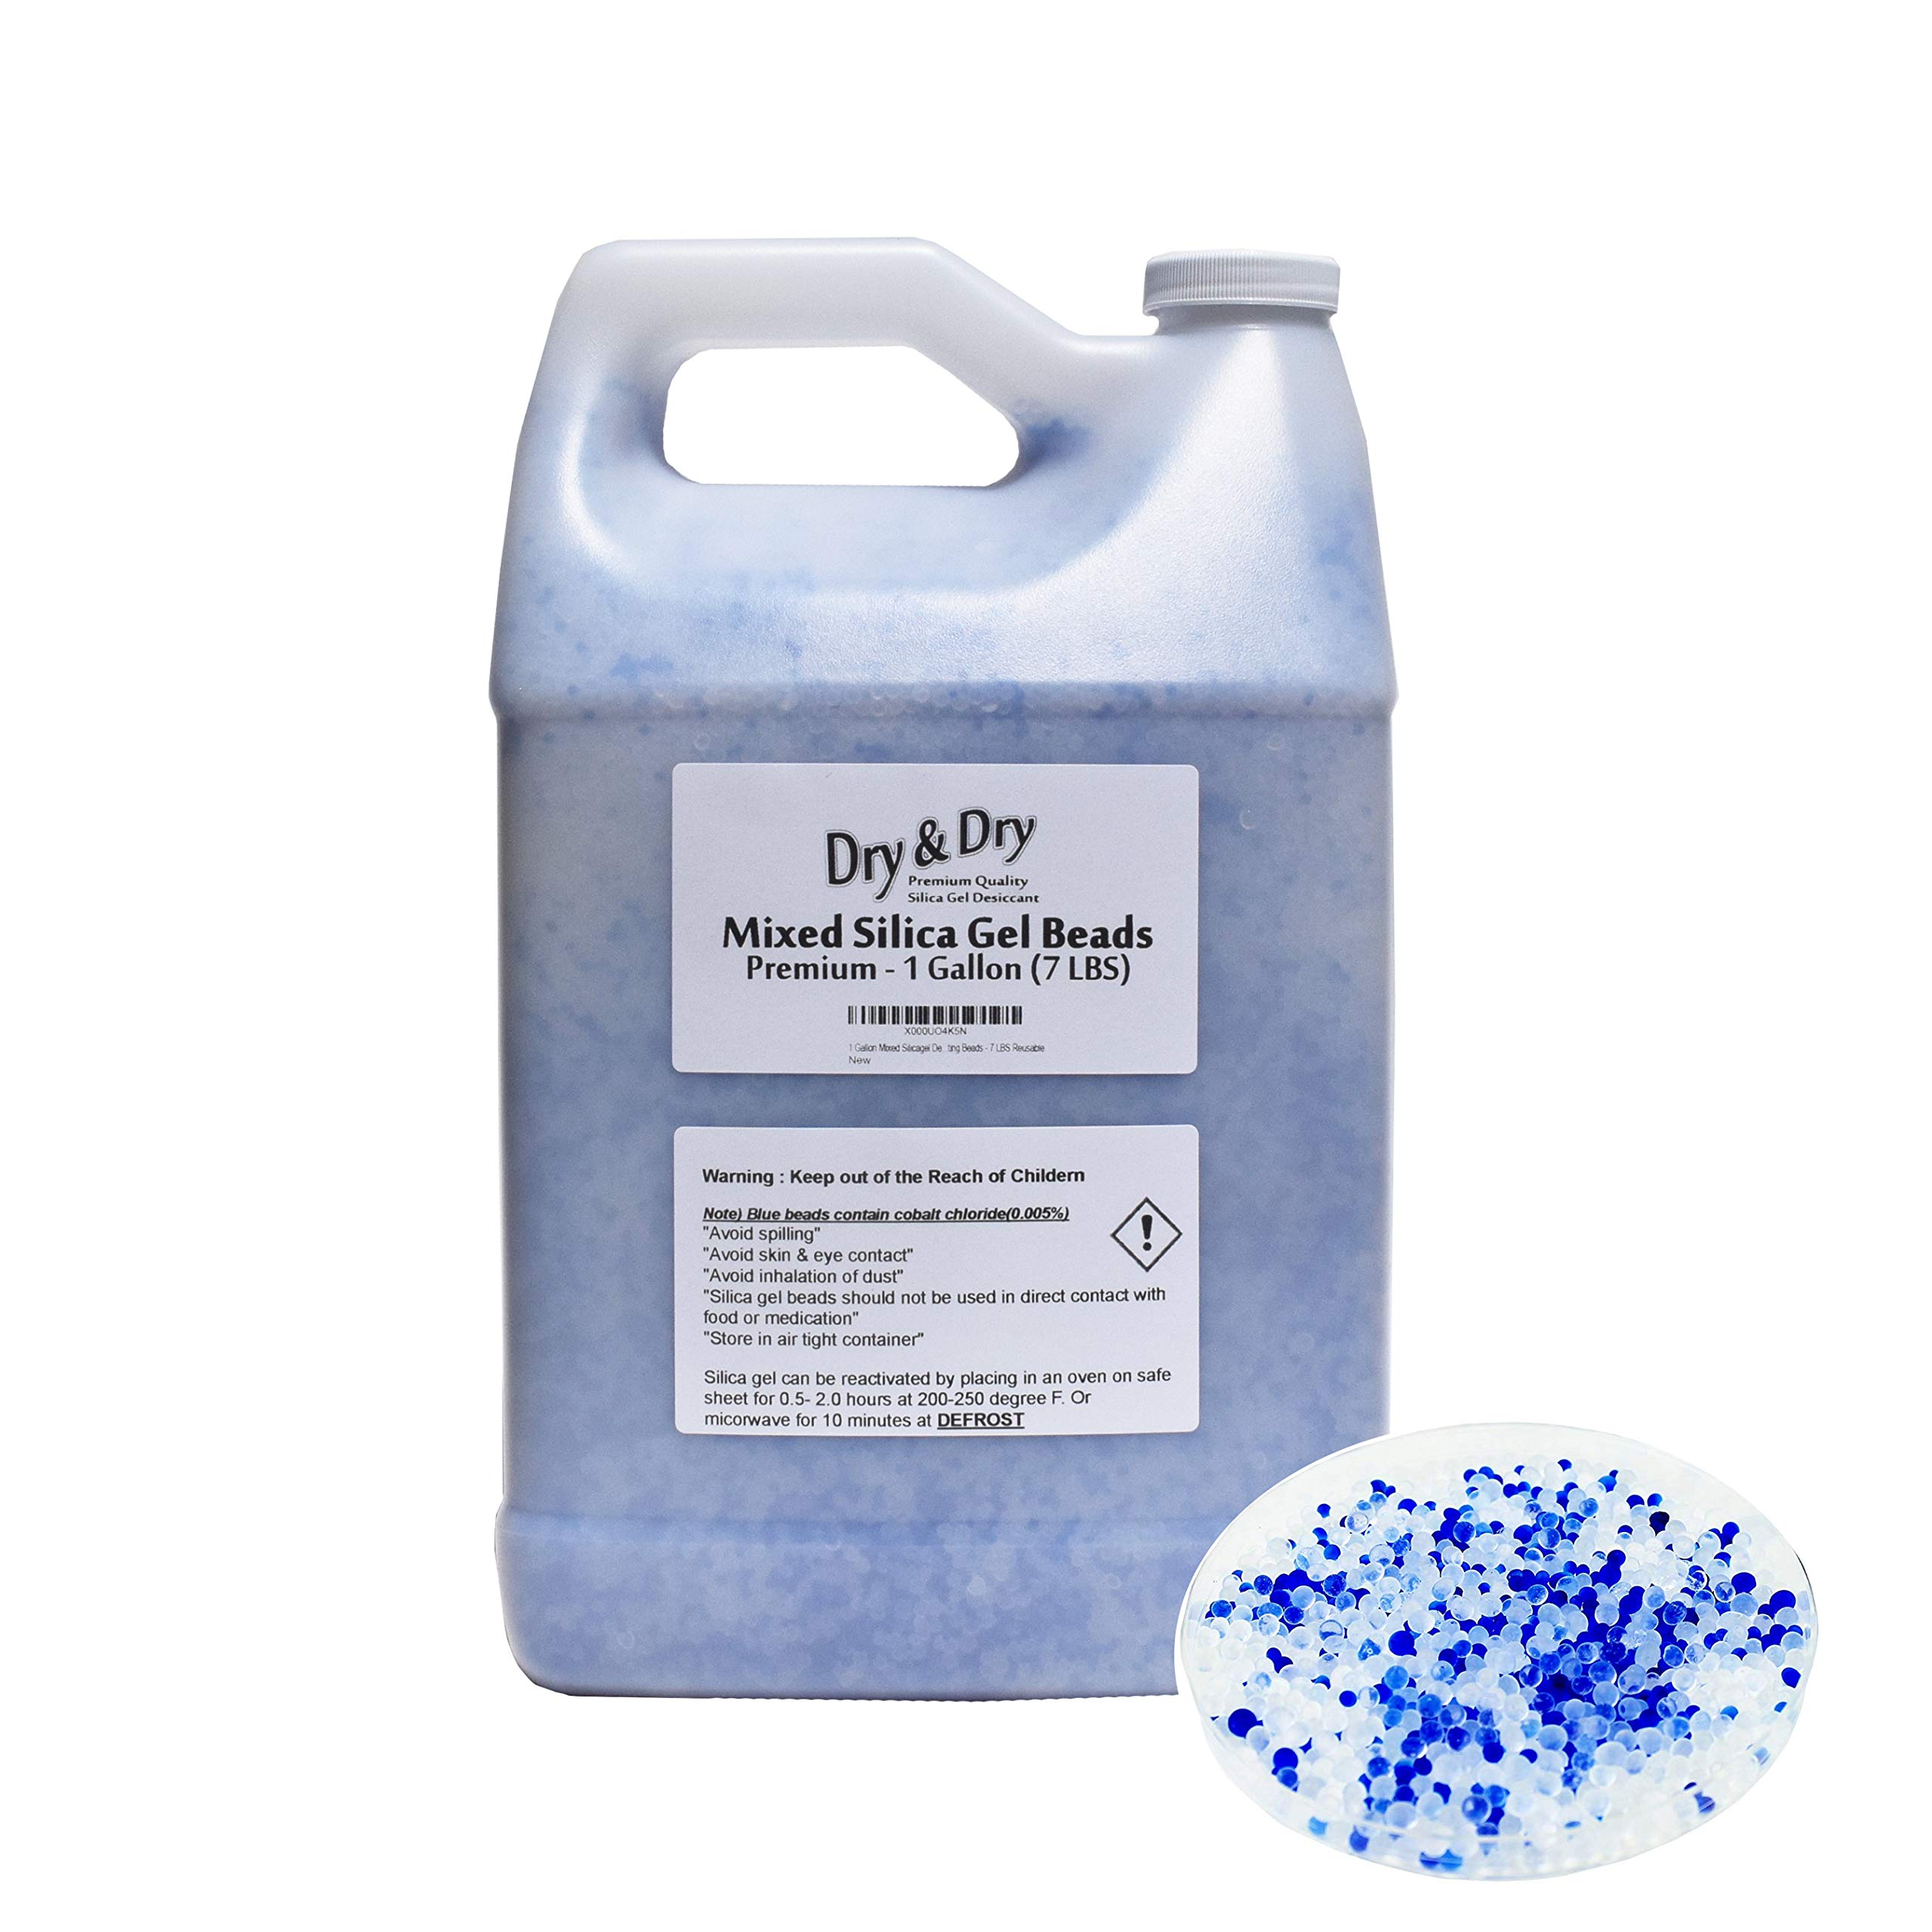 Dry & Dry 1 Gallon Premium Mixed Silicagel Beads with Blue Indicating Beads(Industry Standard 2-4mm) - 7 LBS Reusable by Dry & Dry